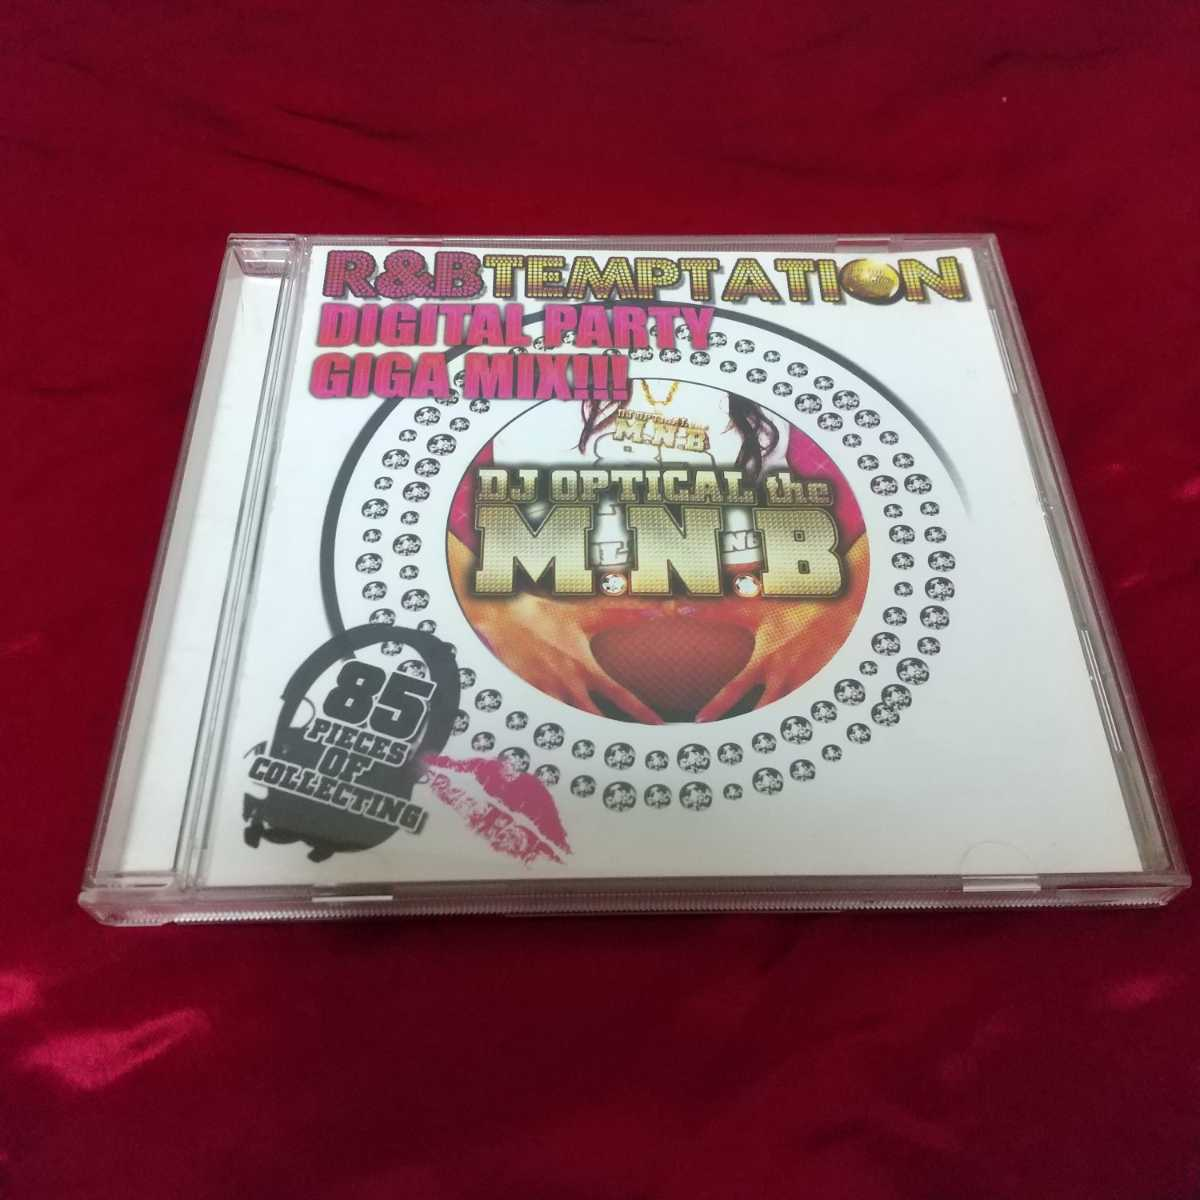 【DJ OPTICAL the M.N.B】R&B TEMPTATION DIGITAL PARTY GIGA MIX!!!☆中古CD・送料無料